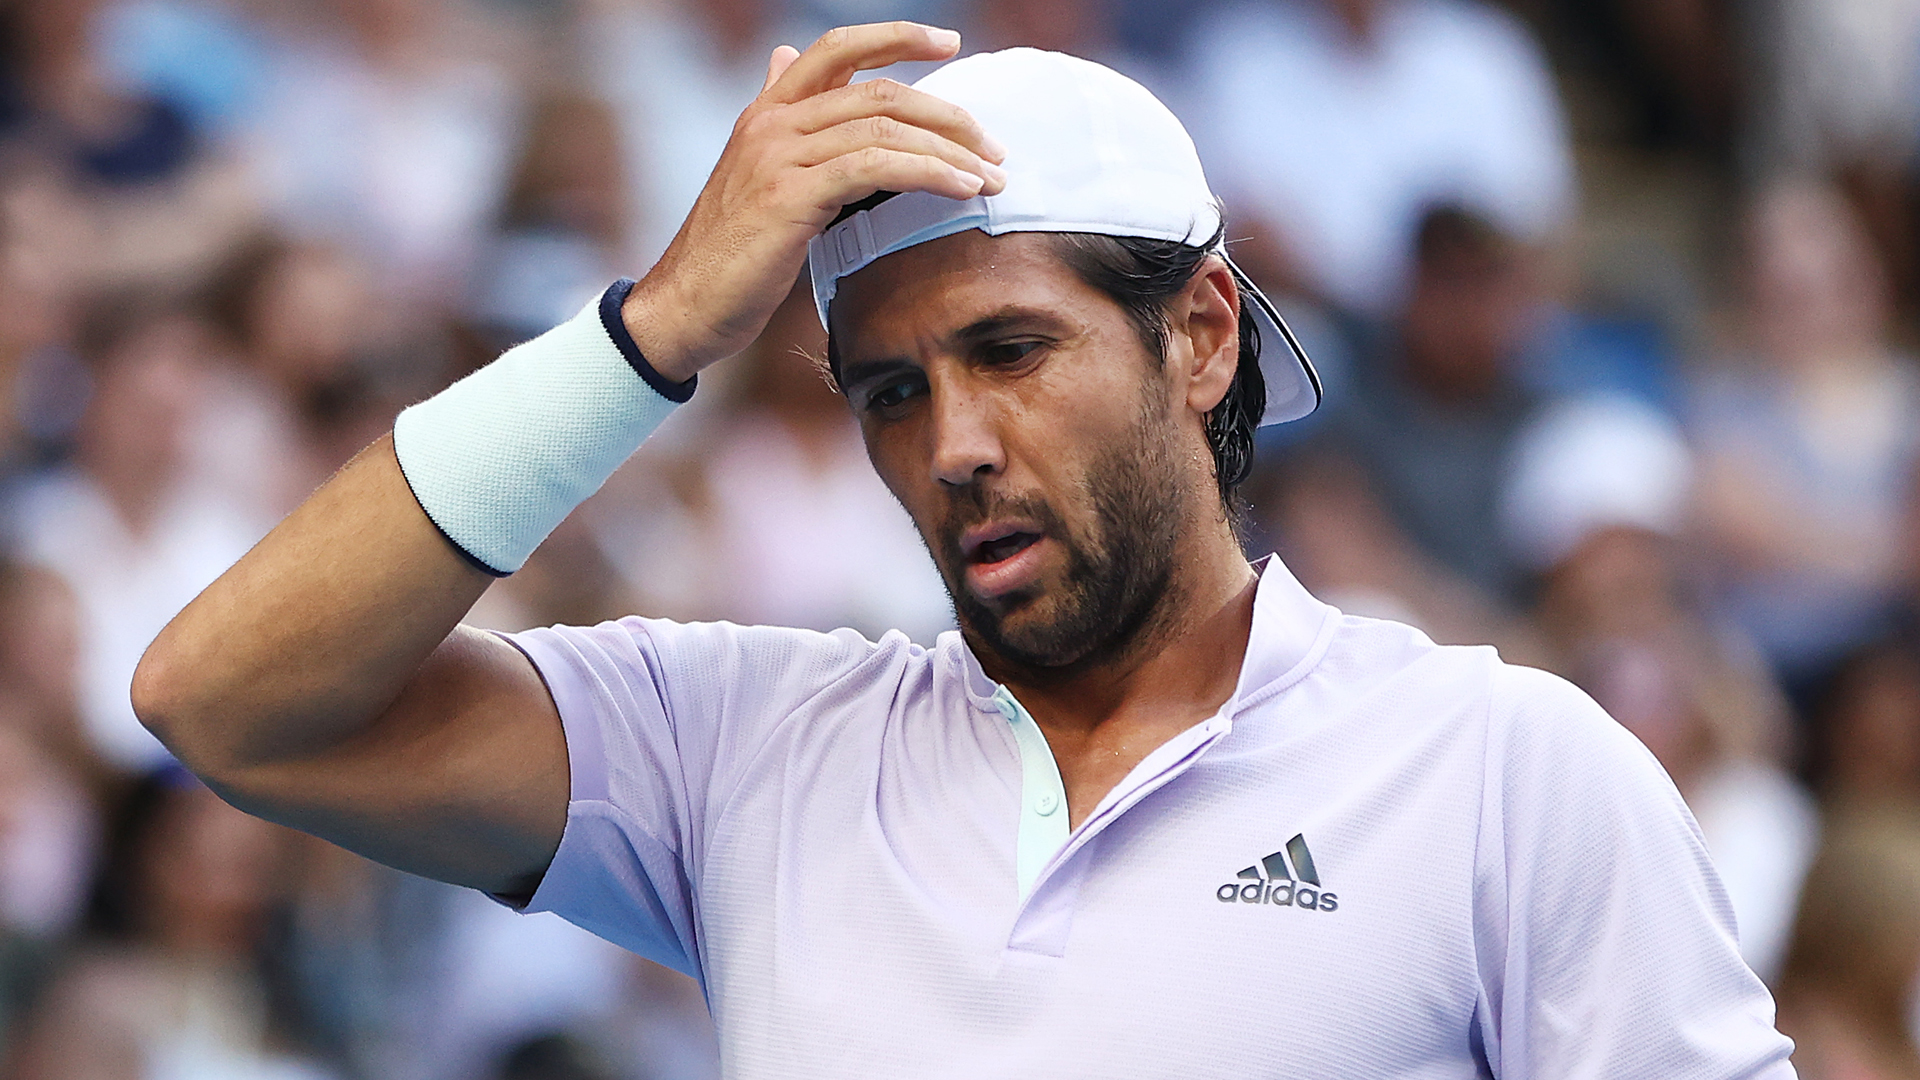 Verdasco falls, Garin battles through in Rio